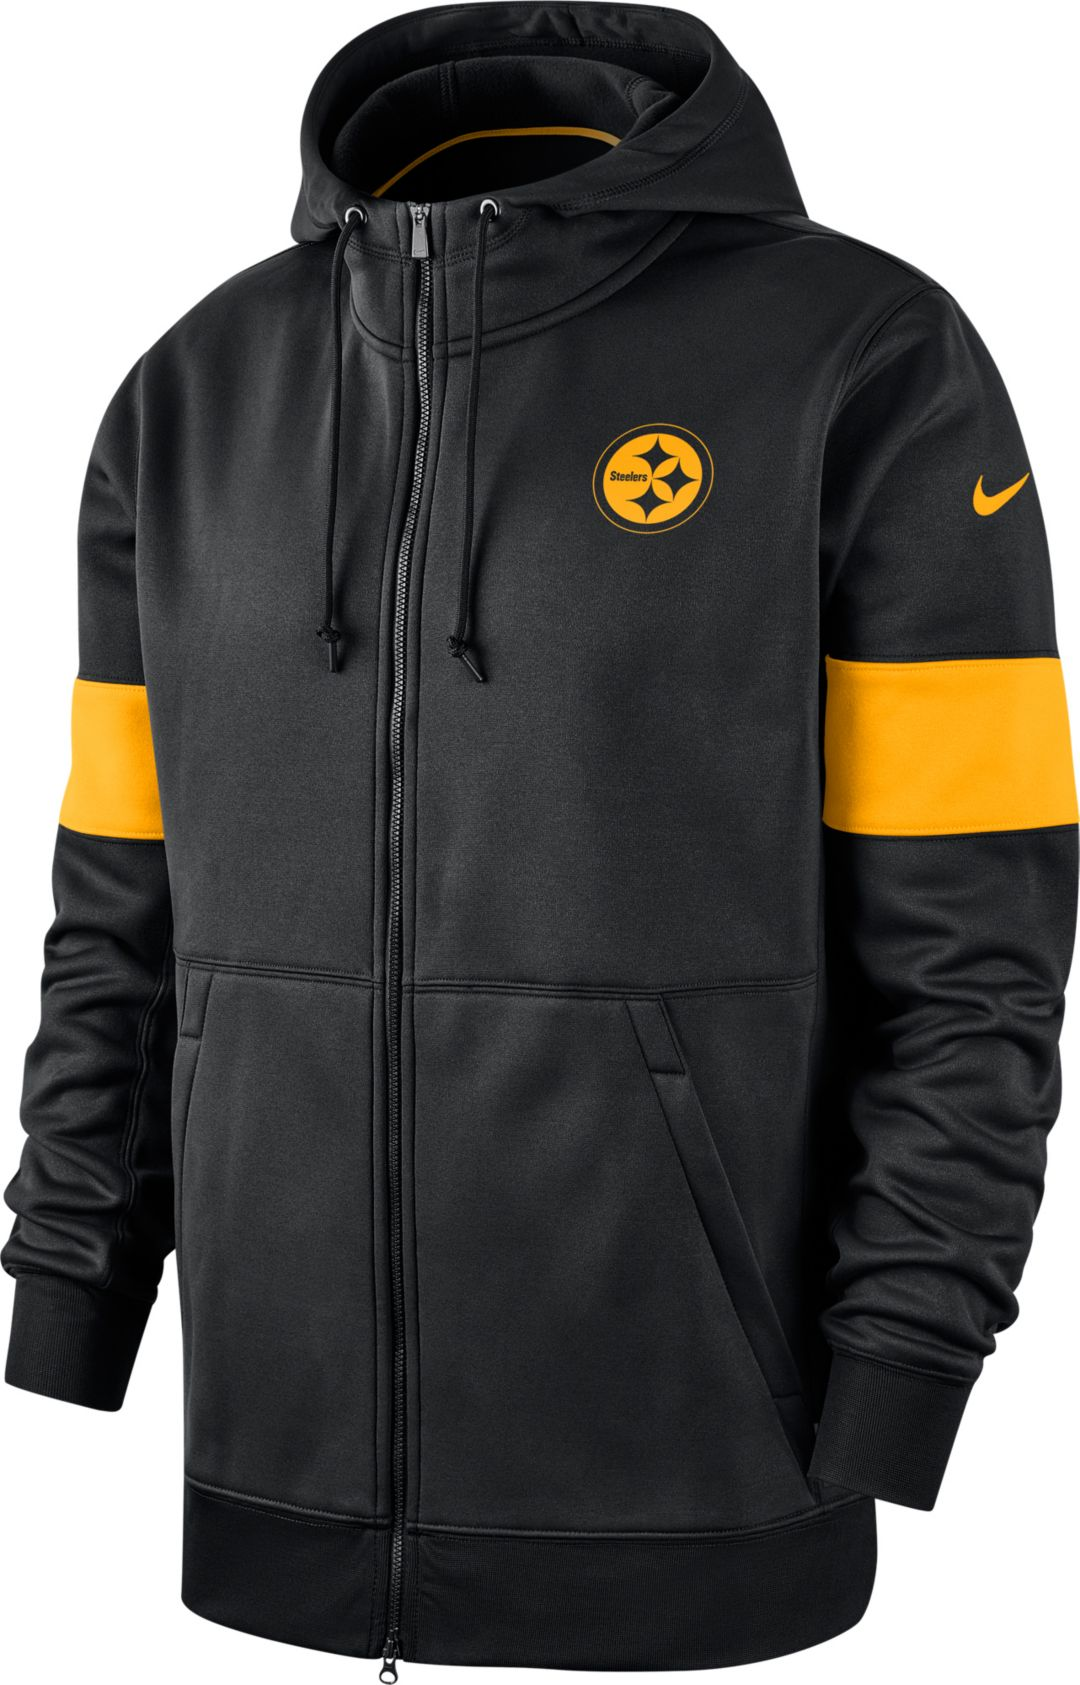 separation shoes 71aa2 e547b Nike Men's Pittsburgh Steelers Sideline Therma-FIT Black Full-Zip Hoodie